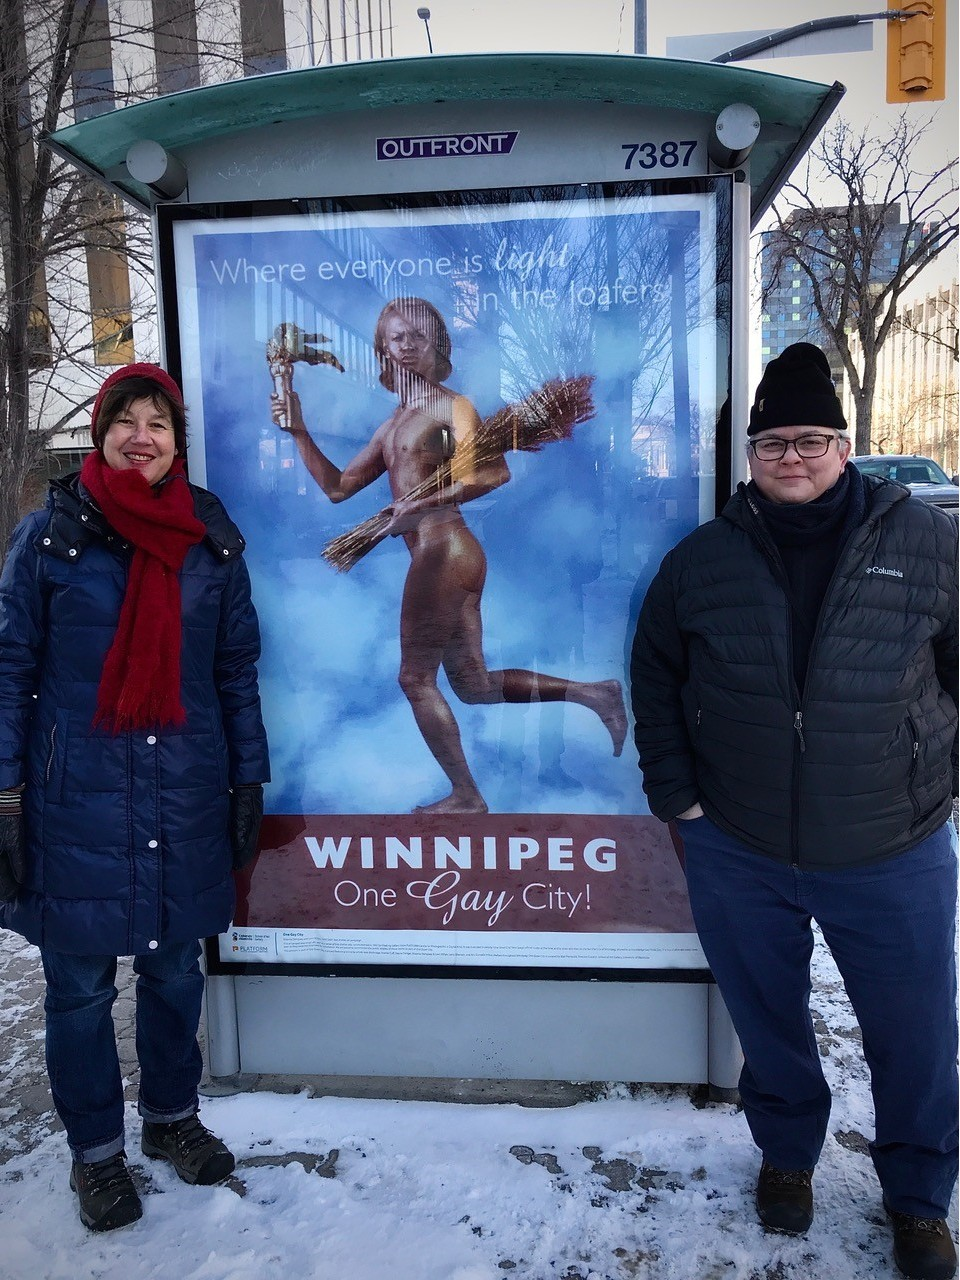 Artists Shawna Dempsey and Lorri Millan besides one of their Winnipeg posters